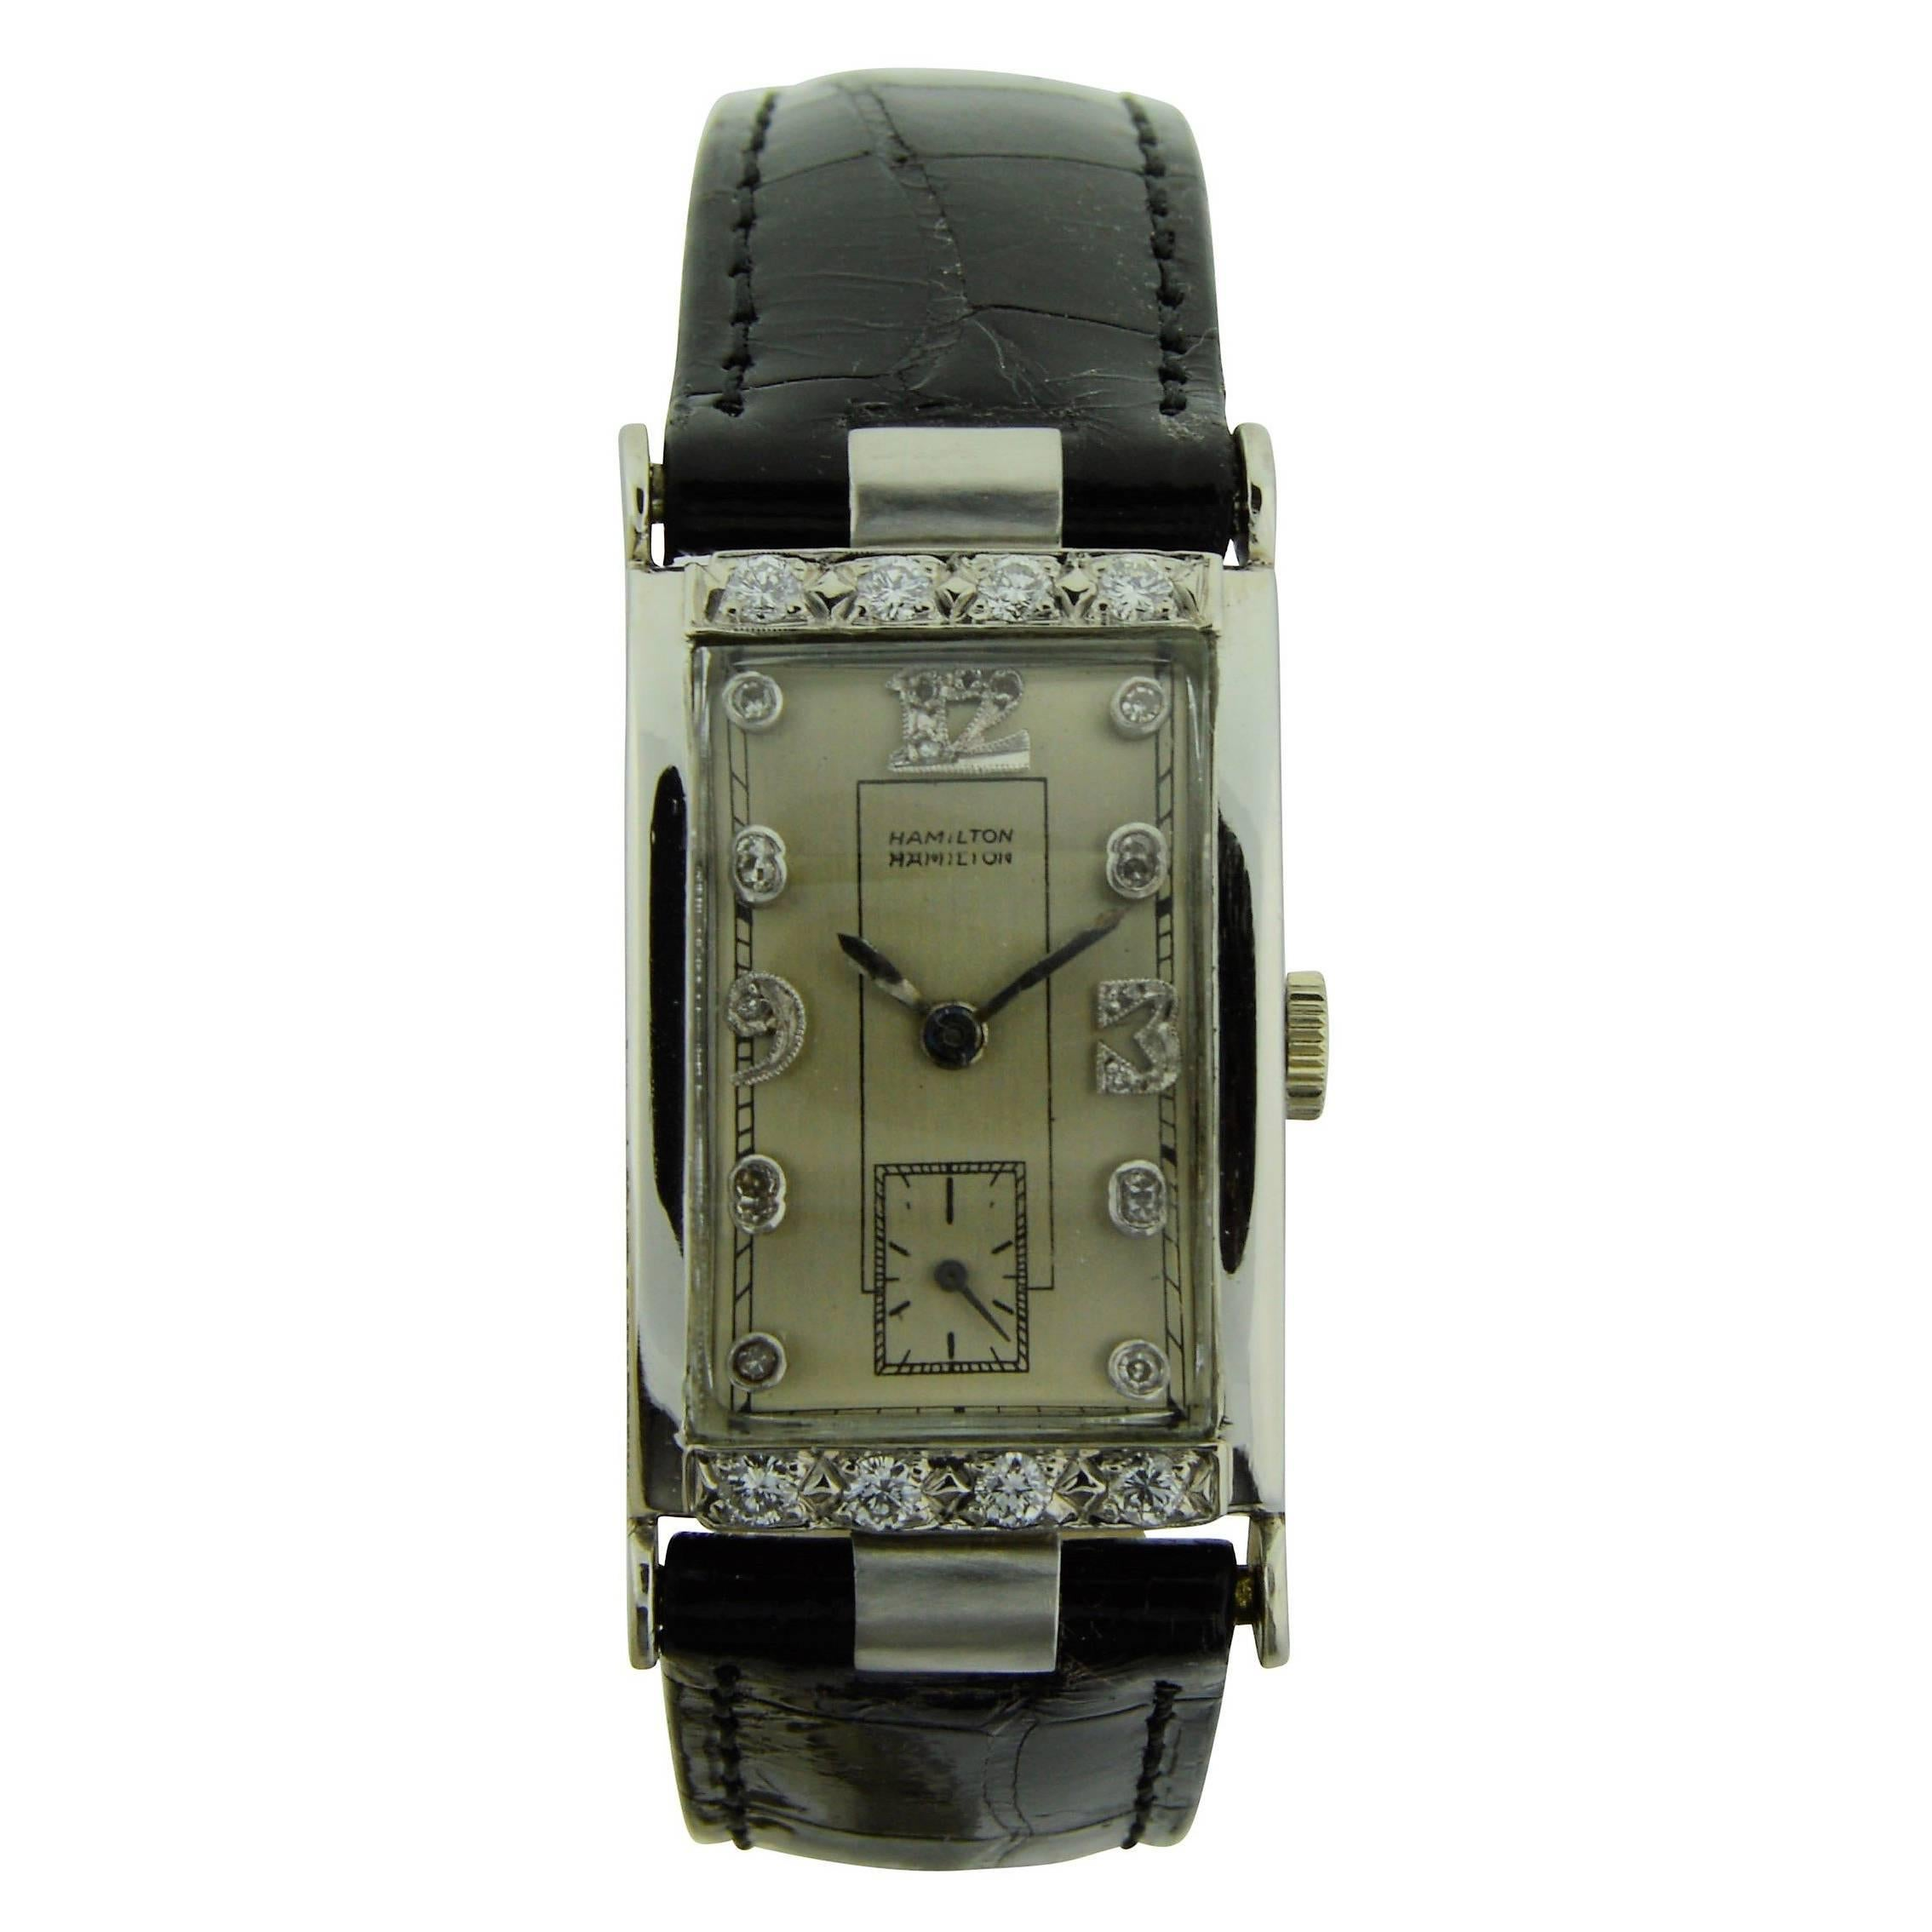 view quick iik products watches filters collection rectangular buy men wrist for dialshape s online black watch